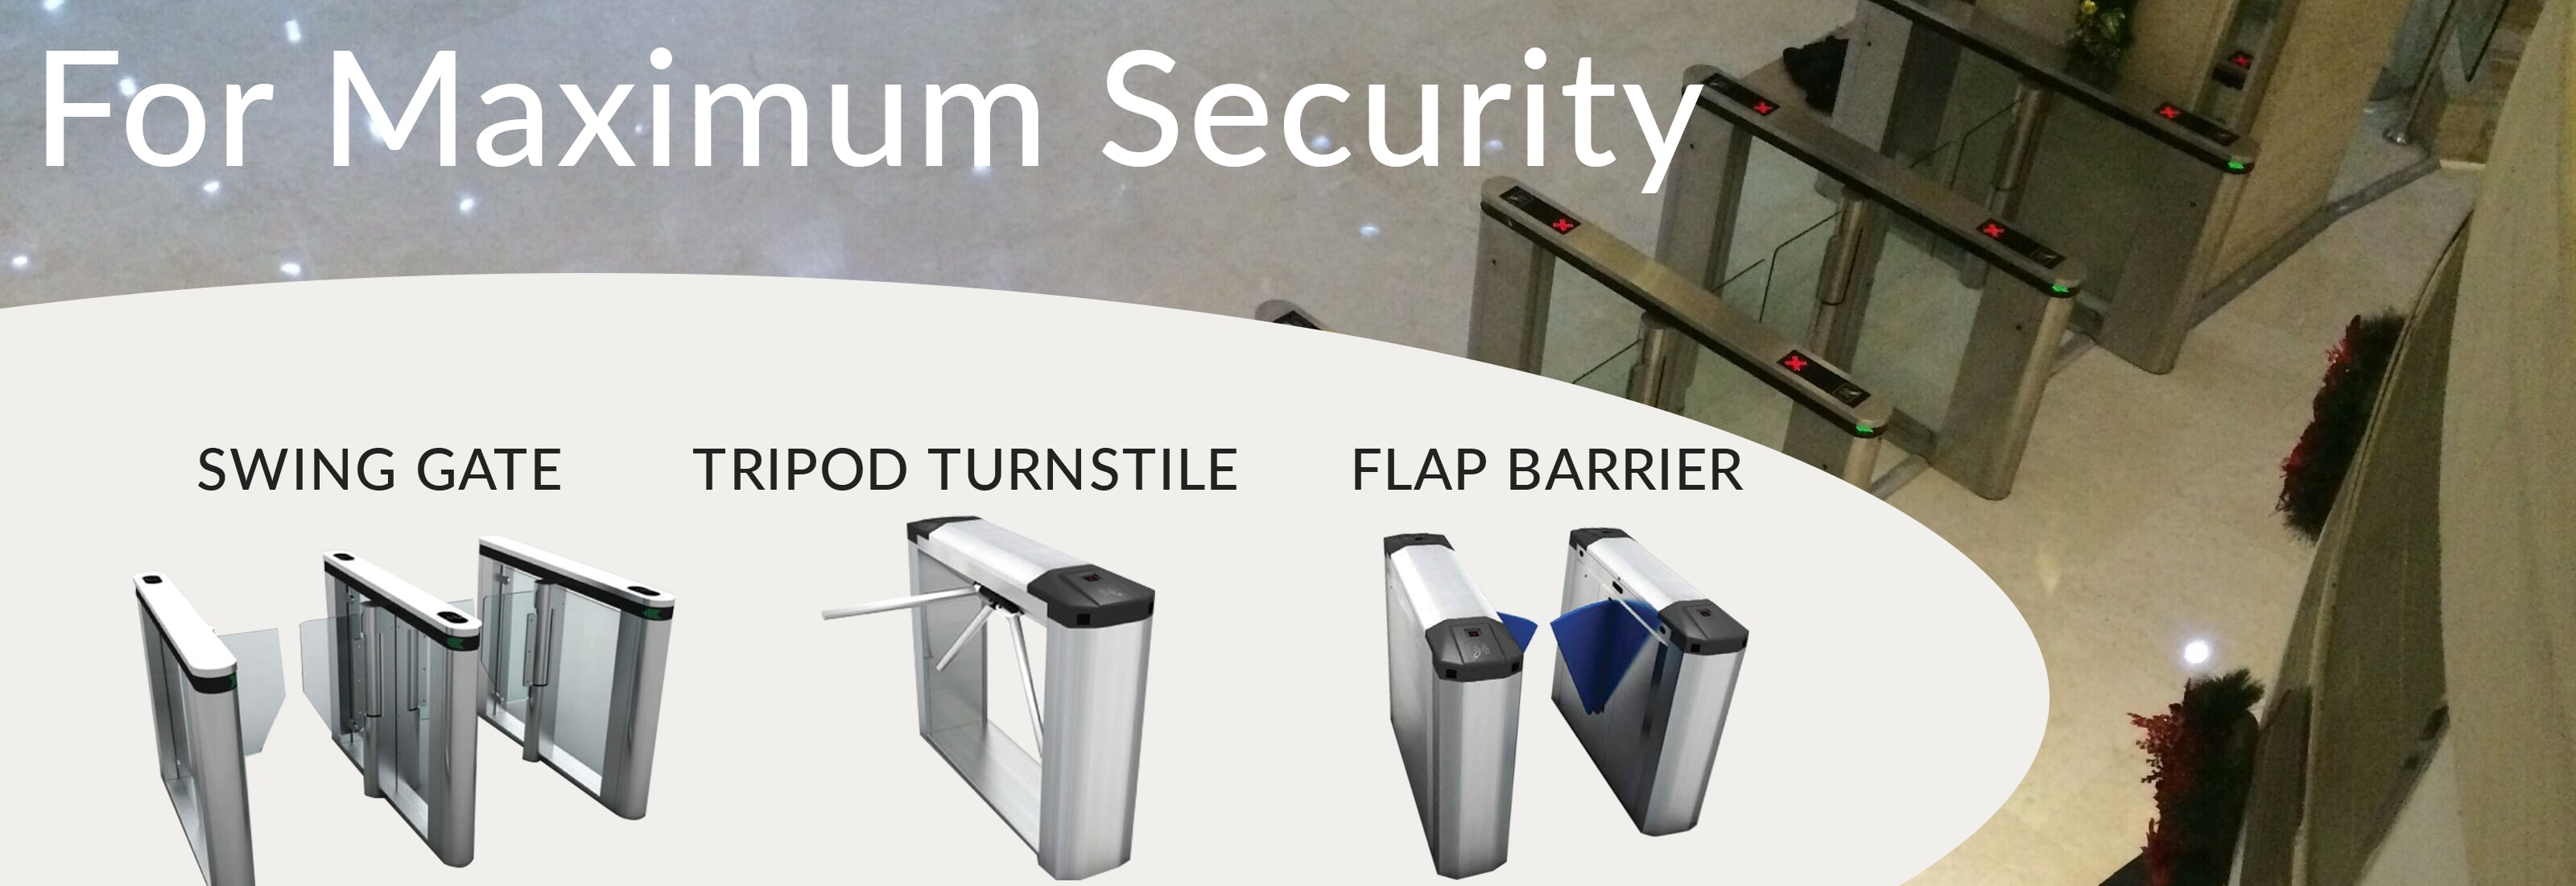 Turnstile/Flap Barrier Access Control